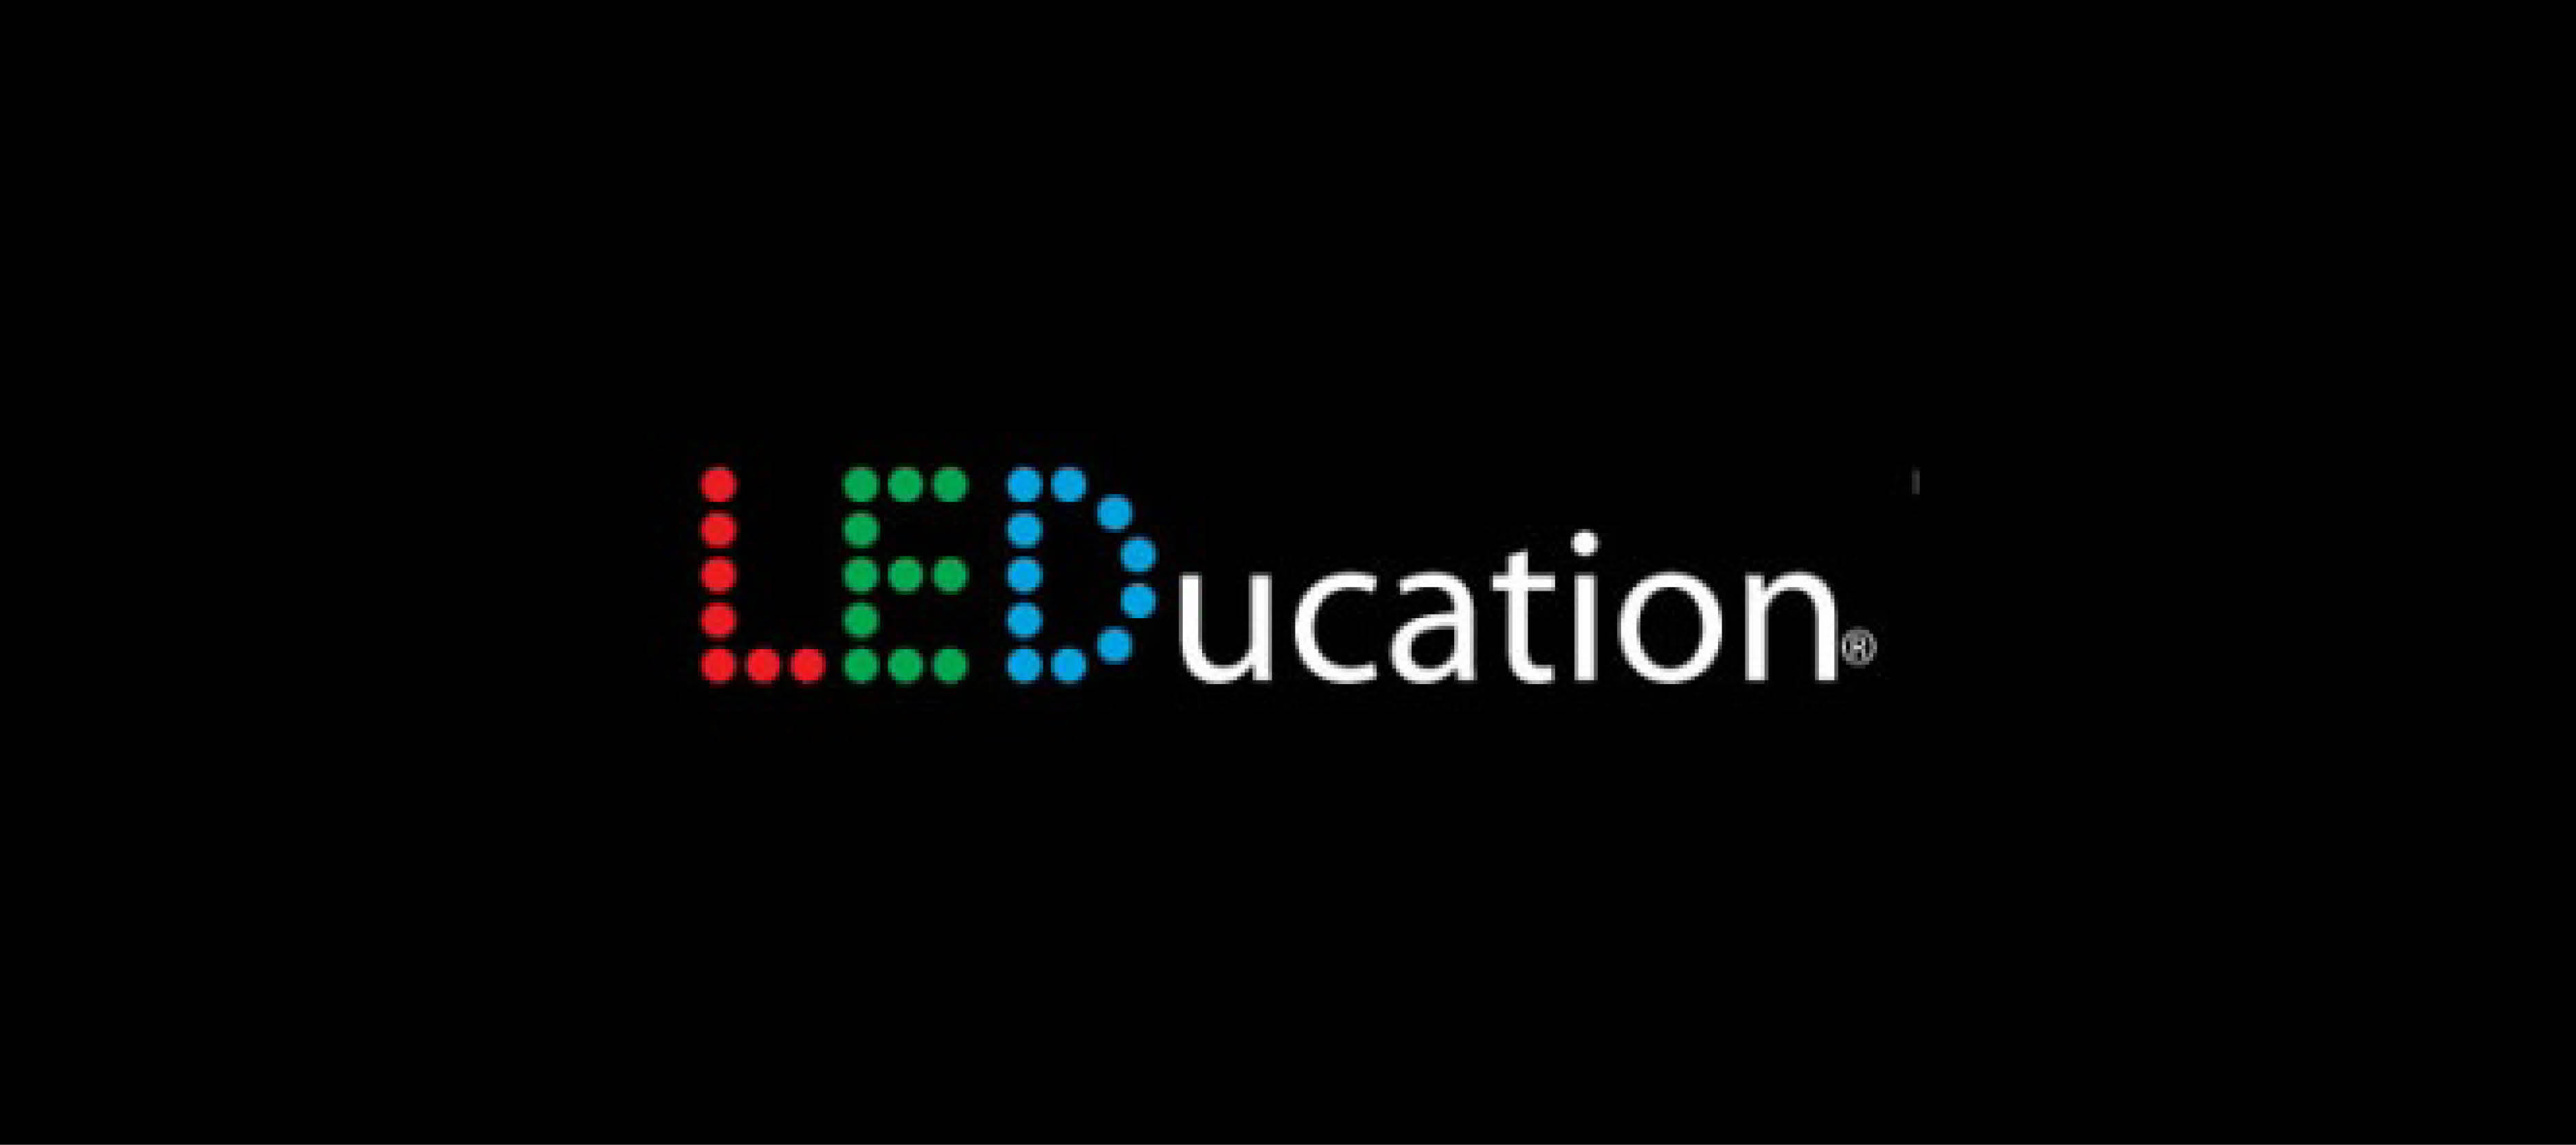 Leducation 2018 logo.